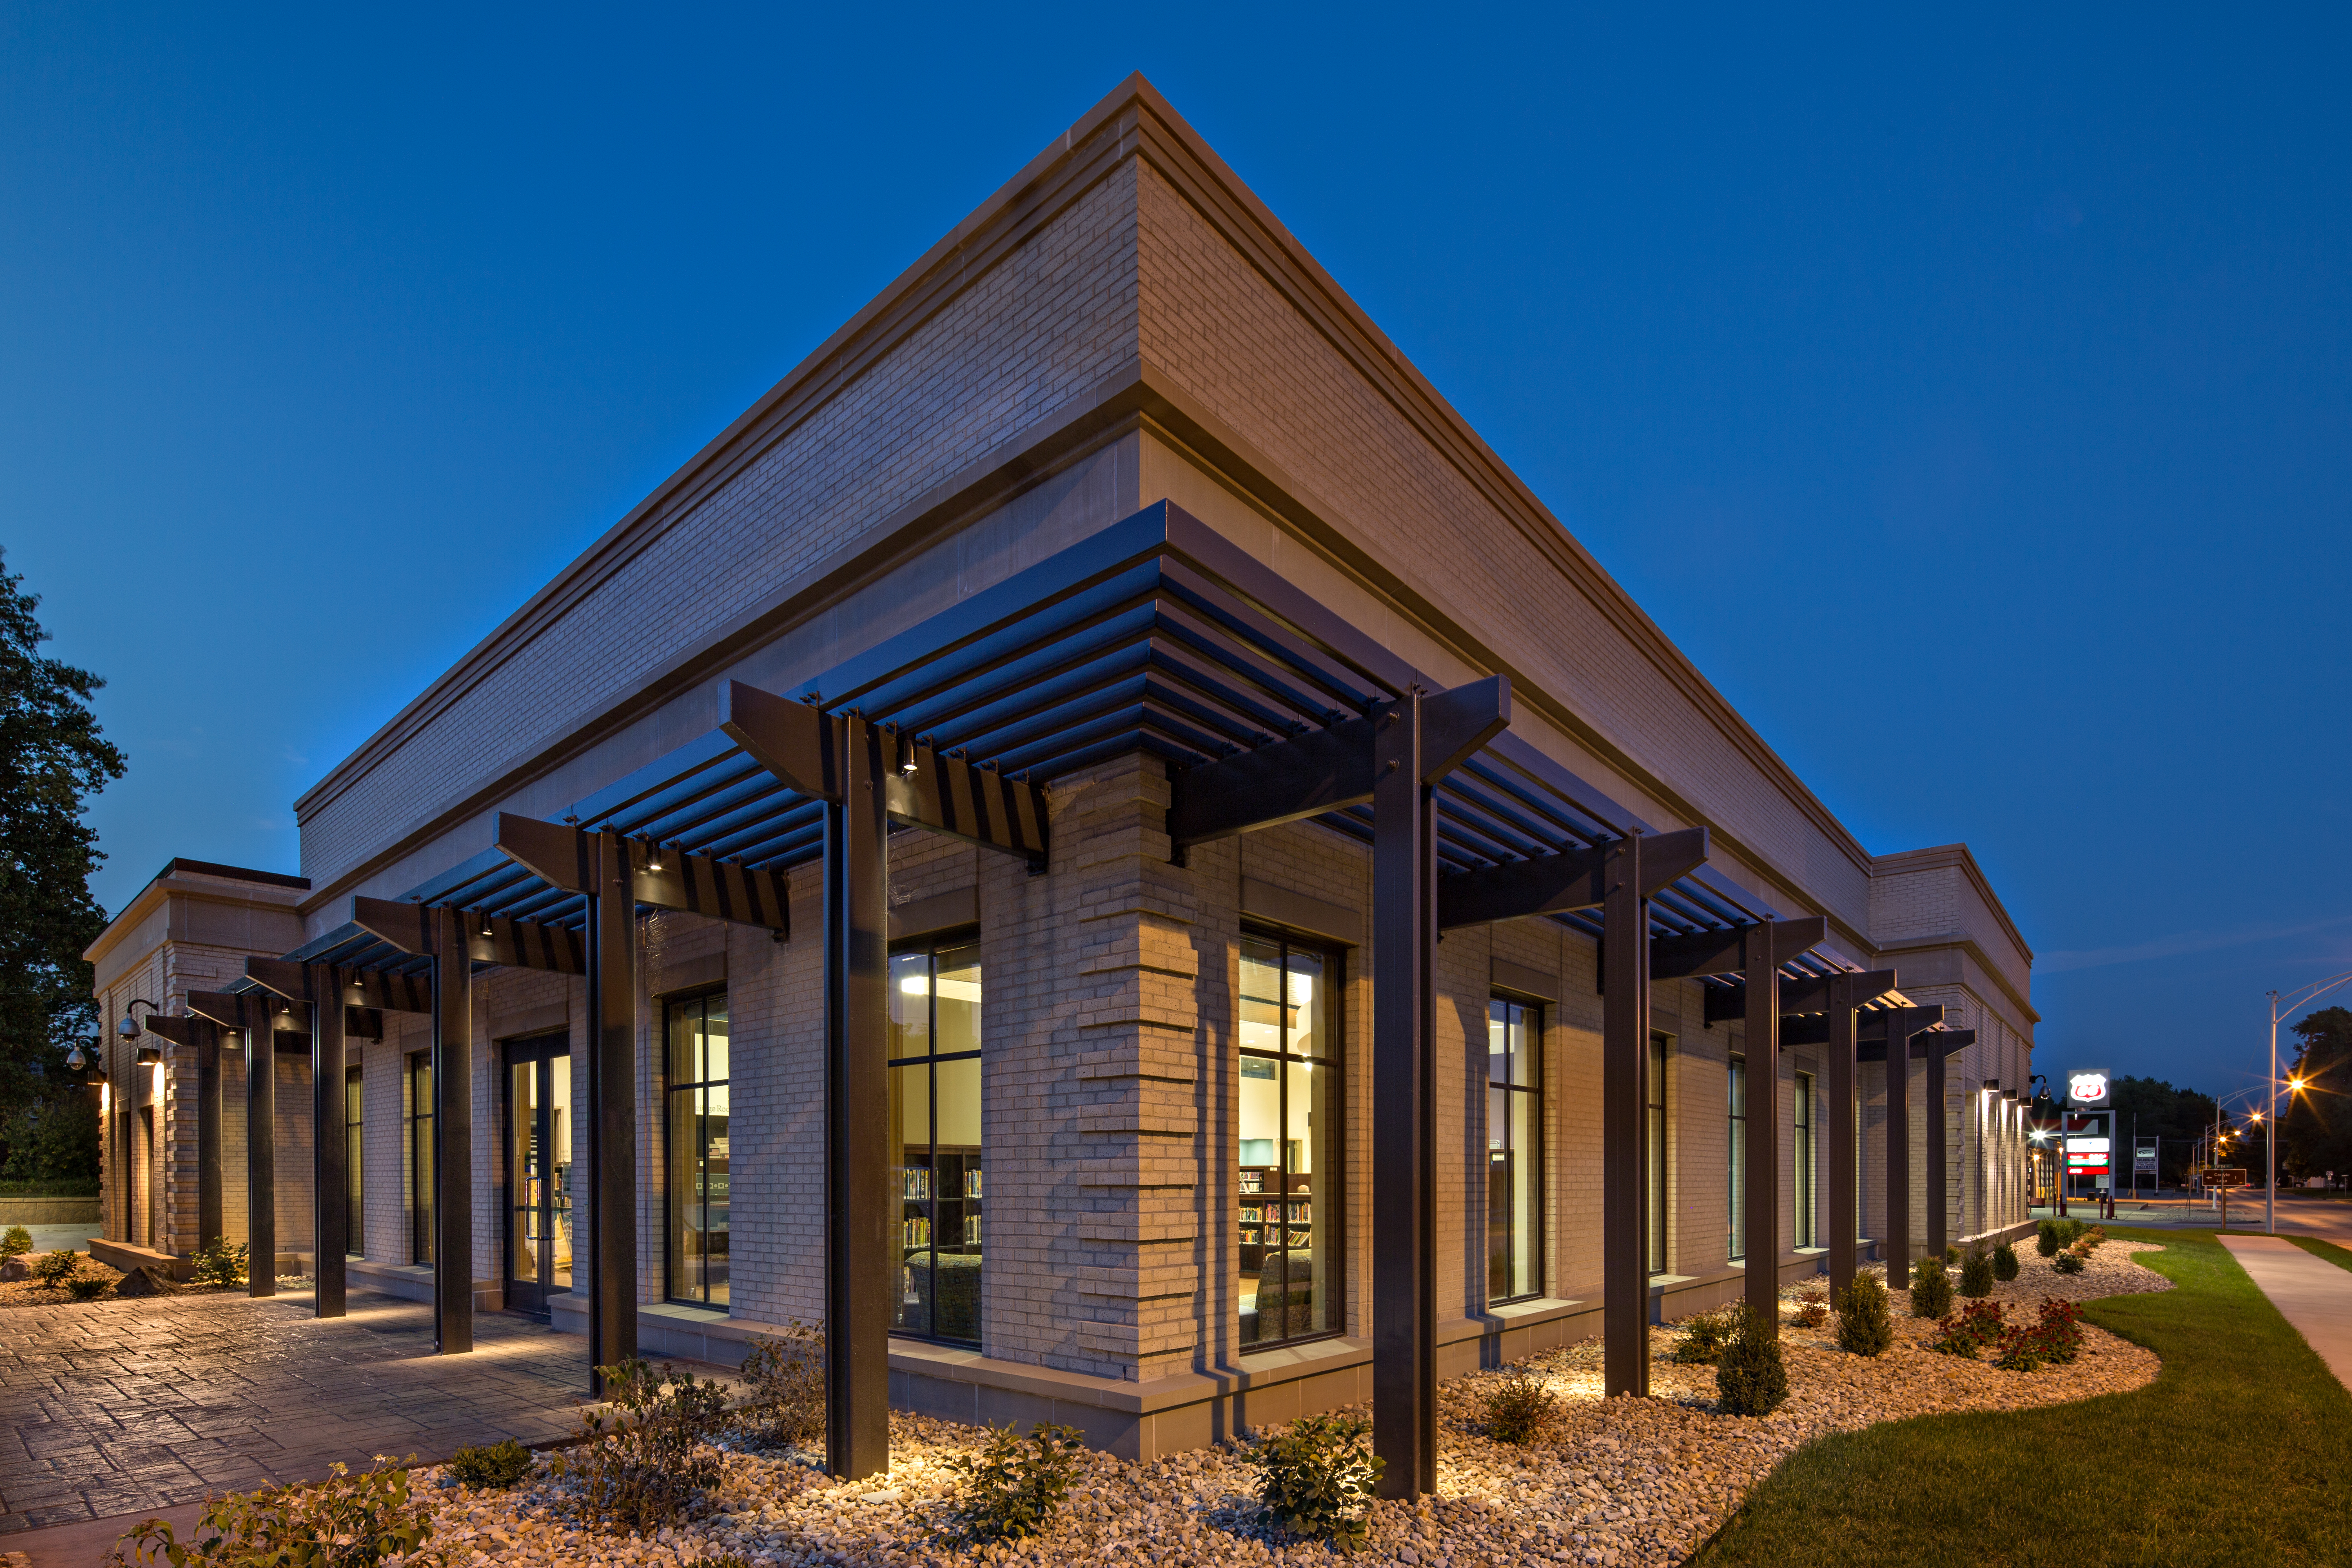 Case-Halstead Library | Poettker Construction